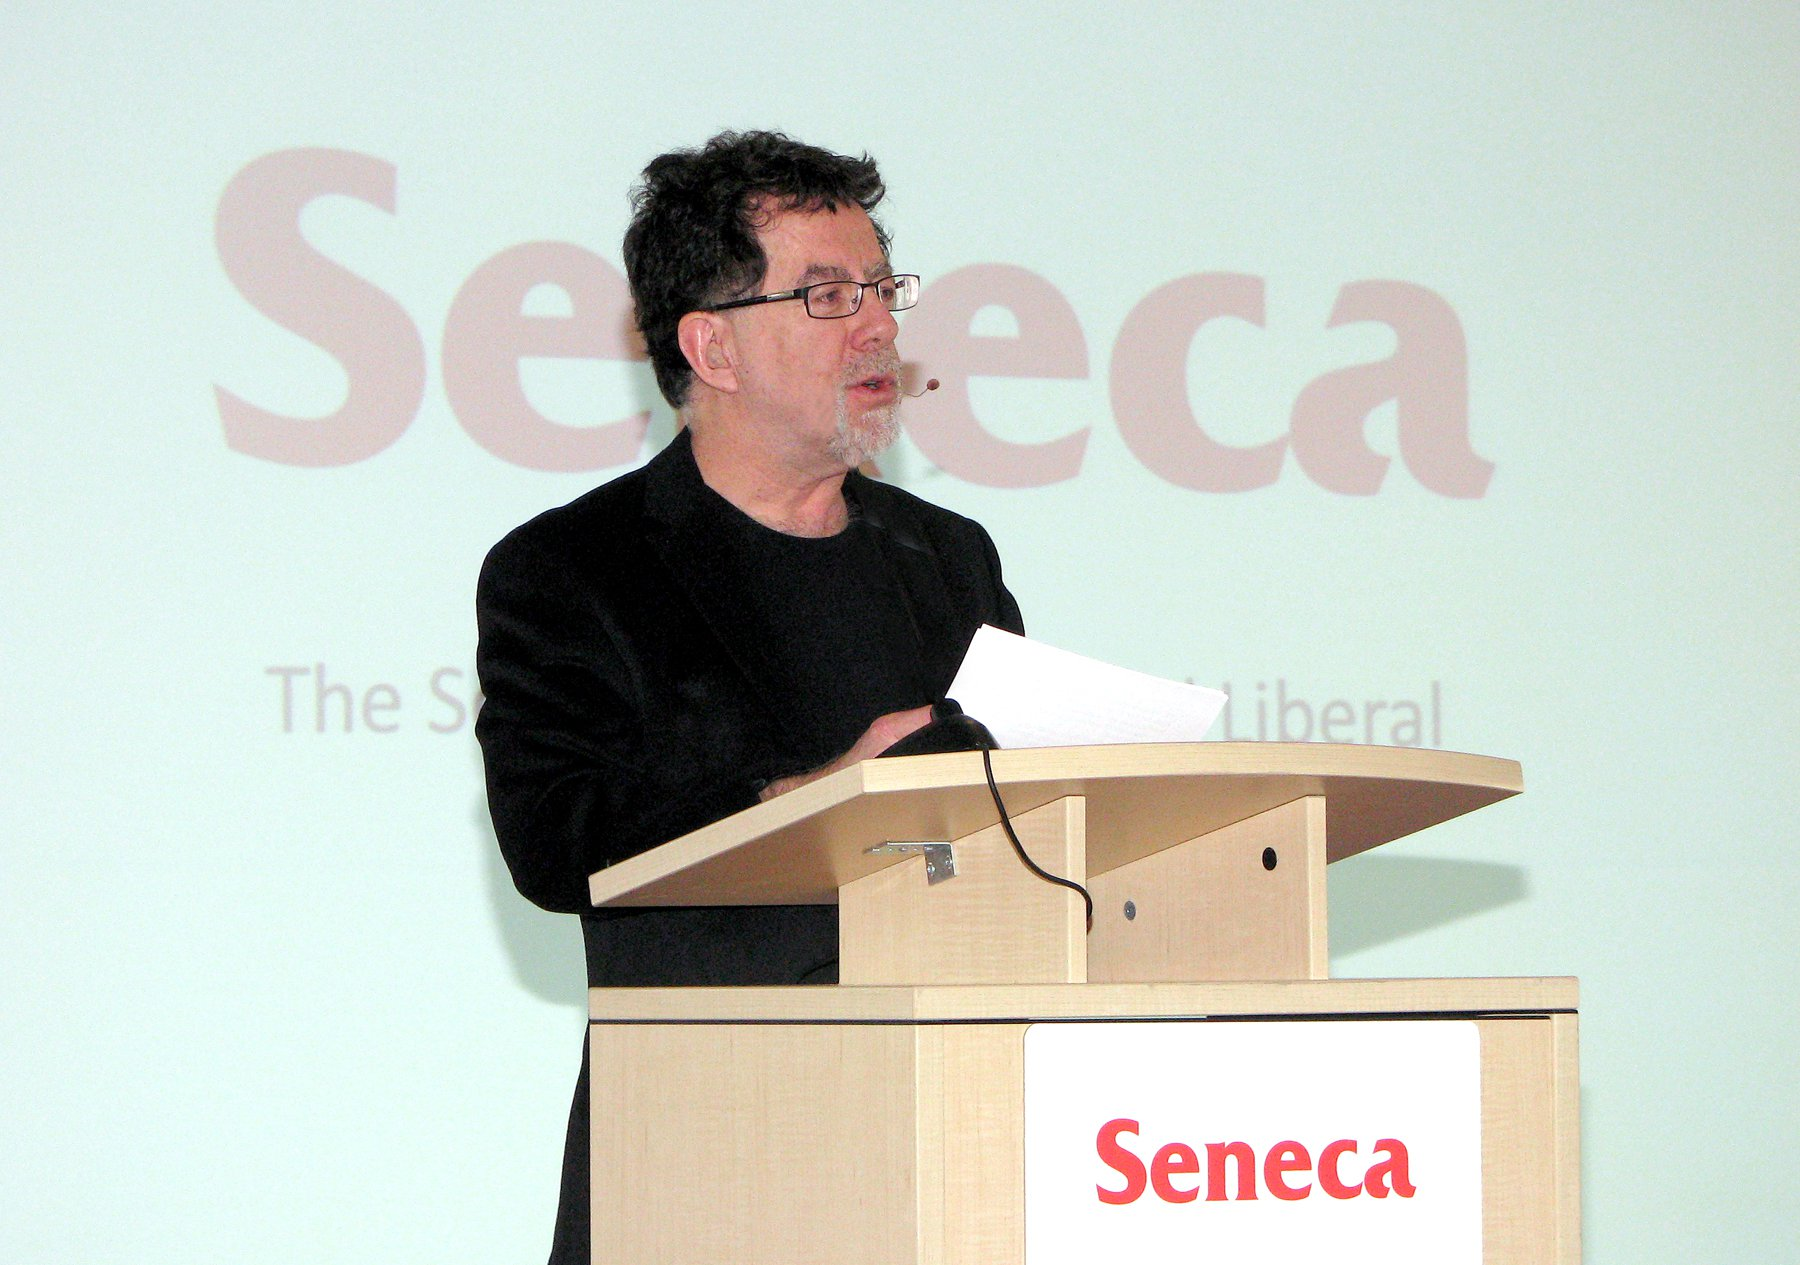 """Bruce's keynote presentation: """"Reading Minds, Not Lips"""" 2011, English and Liberal Studies Colloquium. Seneca College. (Image: A brown-haired man speaking into a headset mic from a podium against a white background that says Seneca.)"""